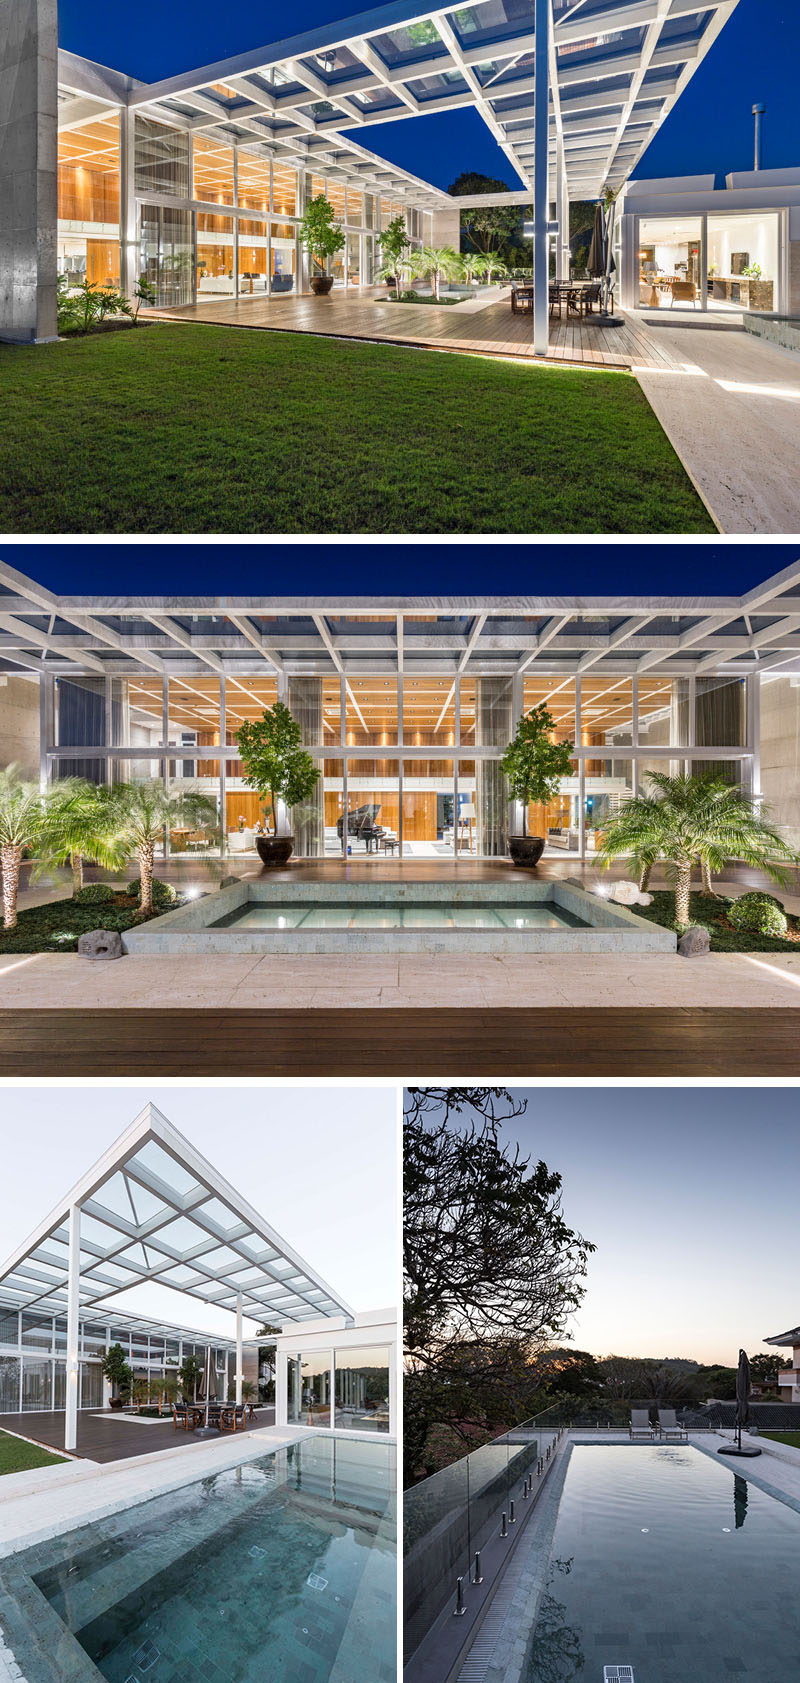 Off the living/dining room of this modern house is a pergola that follows the steel grid lines of the roof, creating the feeling that the house extends itself, mixing outdoor and indoor spaces. #ModernPergola #SwimmingPool